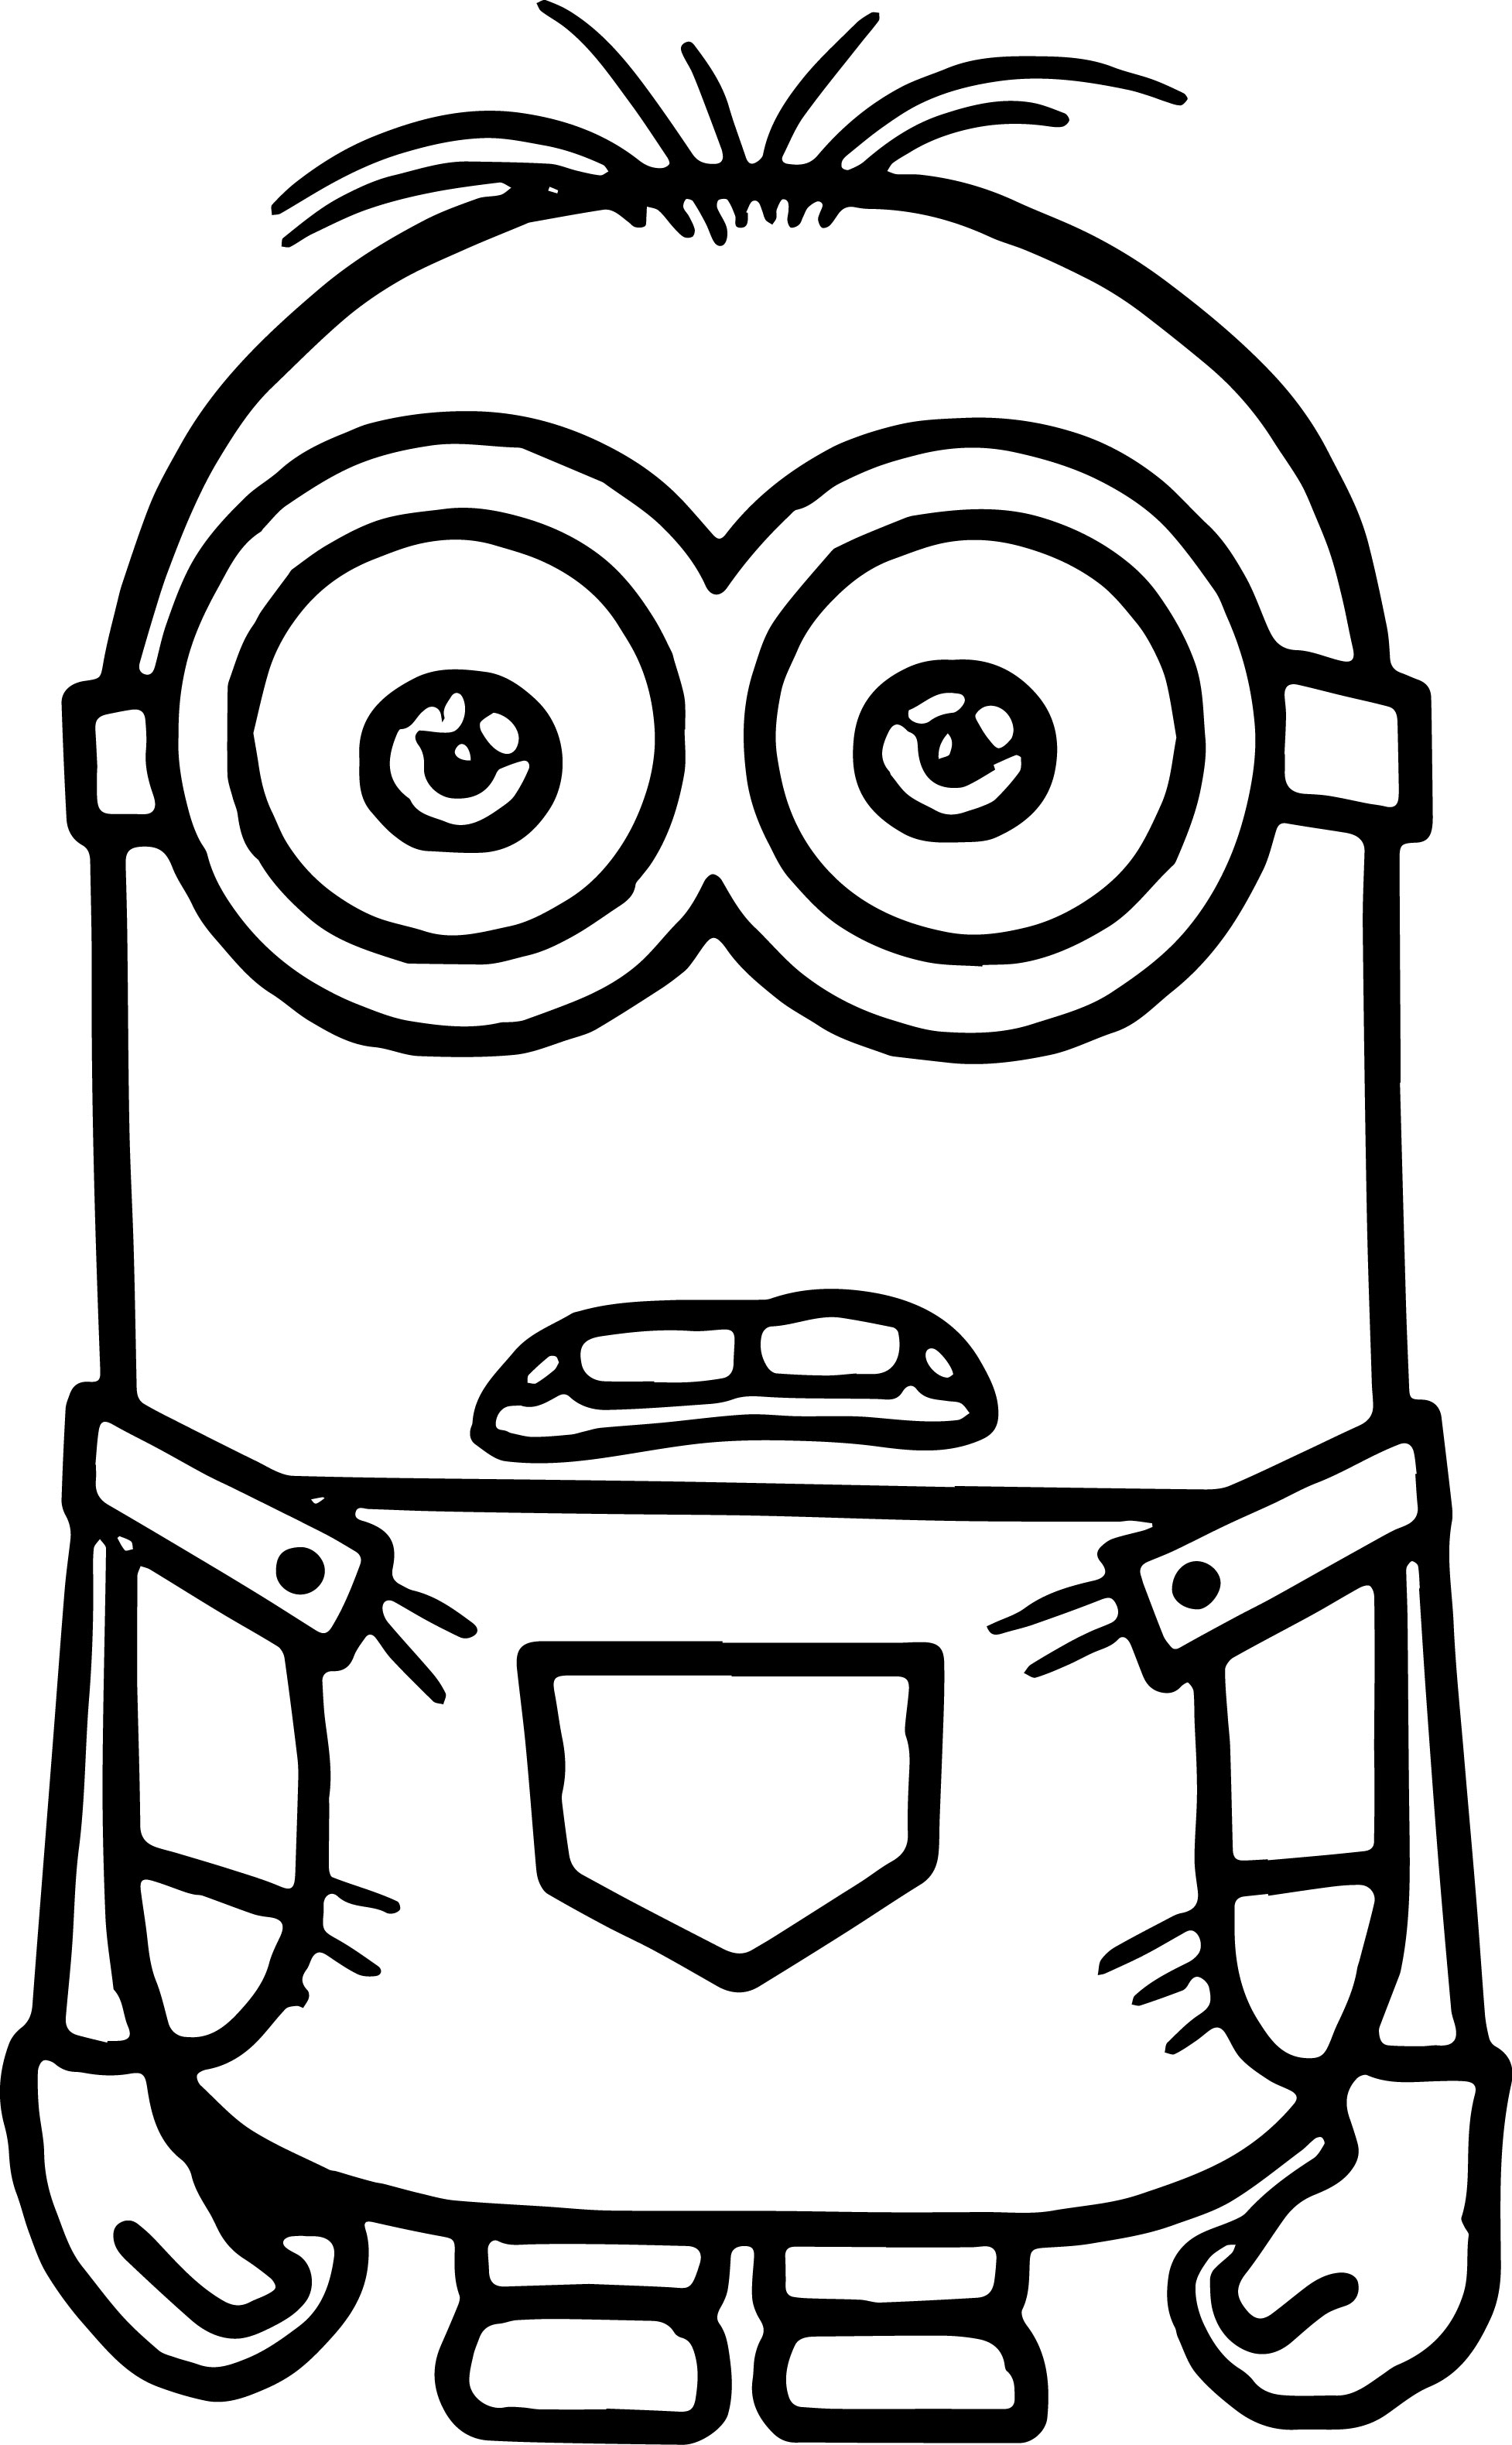 free minion coloring pages minion coloring pages fotolipcom rich image and wallpaper coloring pages free minion